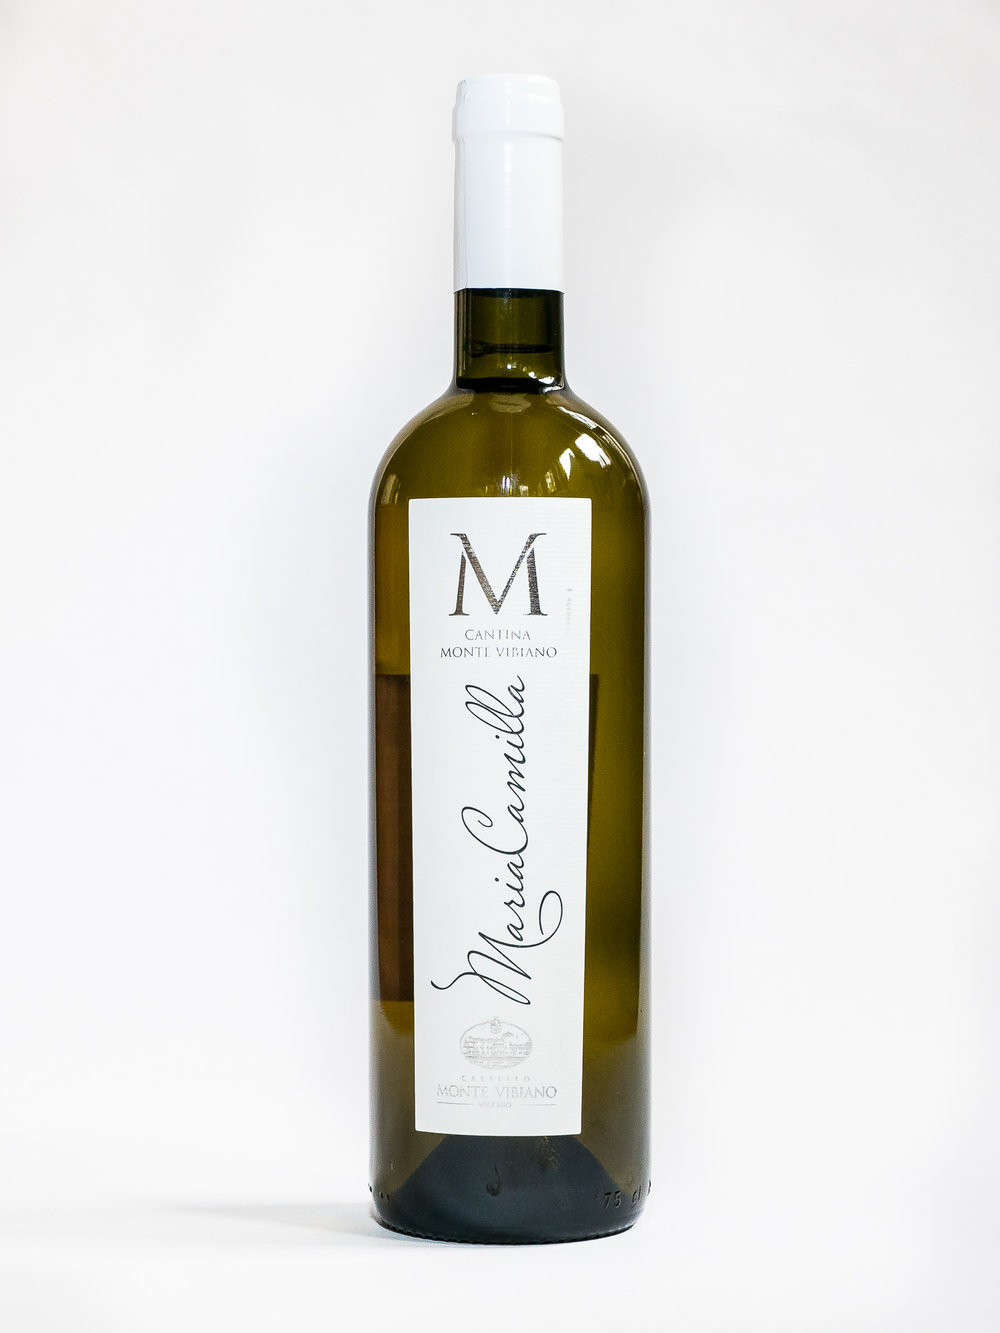 Villa Maria Camilla 2017    Producer:   Castello Monte Vibiano    Region:  Umbria  Grapes:  Trebbiano Spoletino, Grechetto, Sauvignon Blanc, Viognier  Characteristics:  Notes of citrus and white fruit, with hints of wild flowers. Subtle yet vibrant flavor, elegant and well-structured, characterized by classic mineral sensations. Ideal with pasta, risotto or white meats.